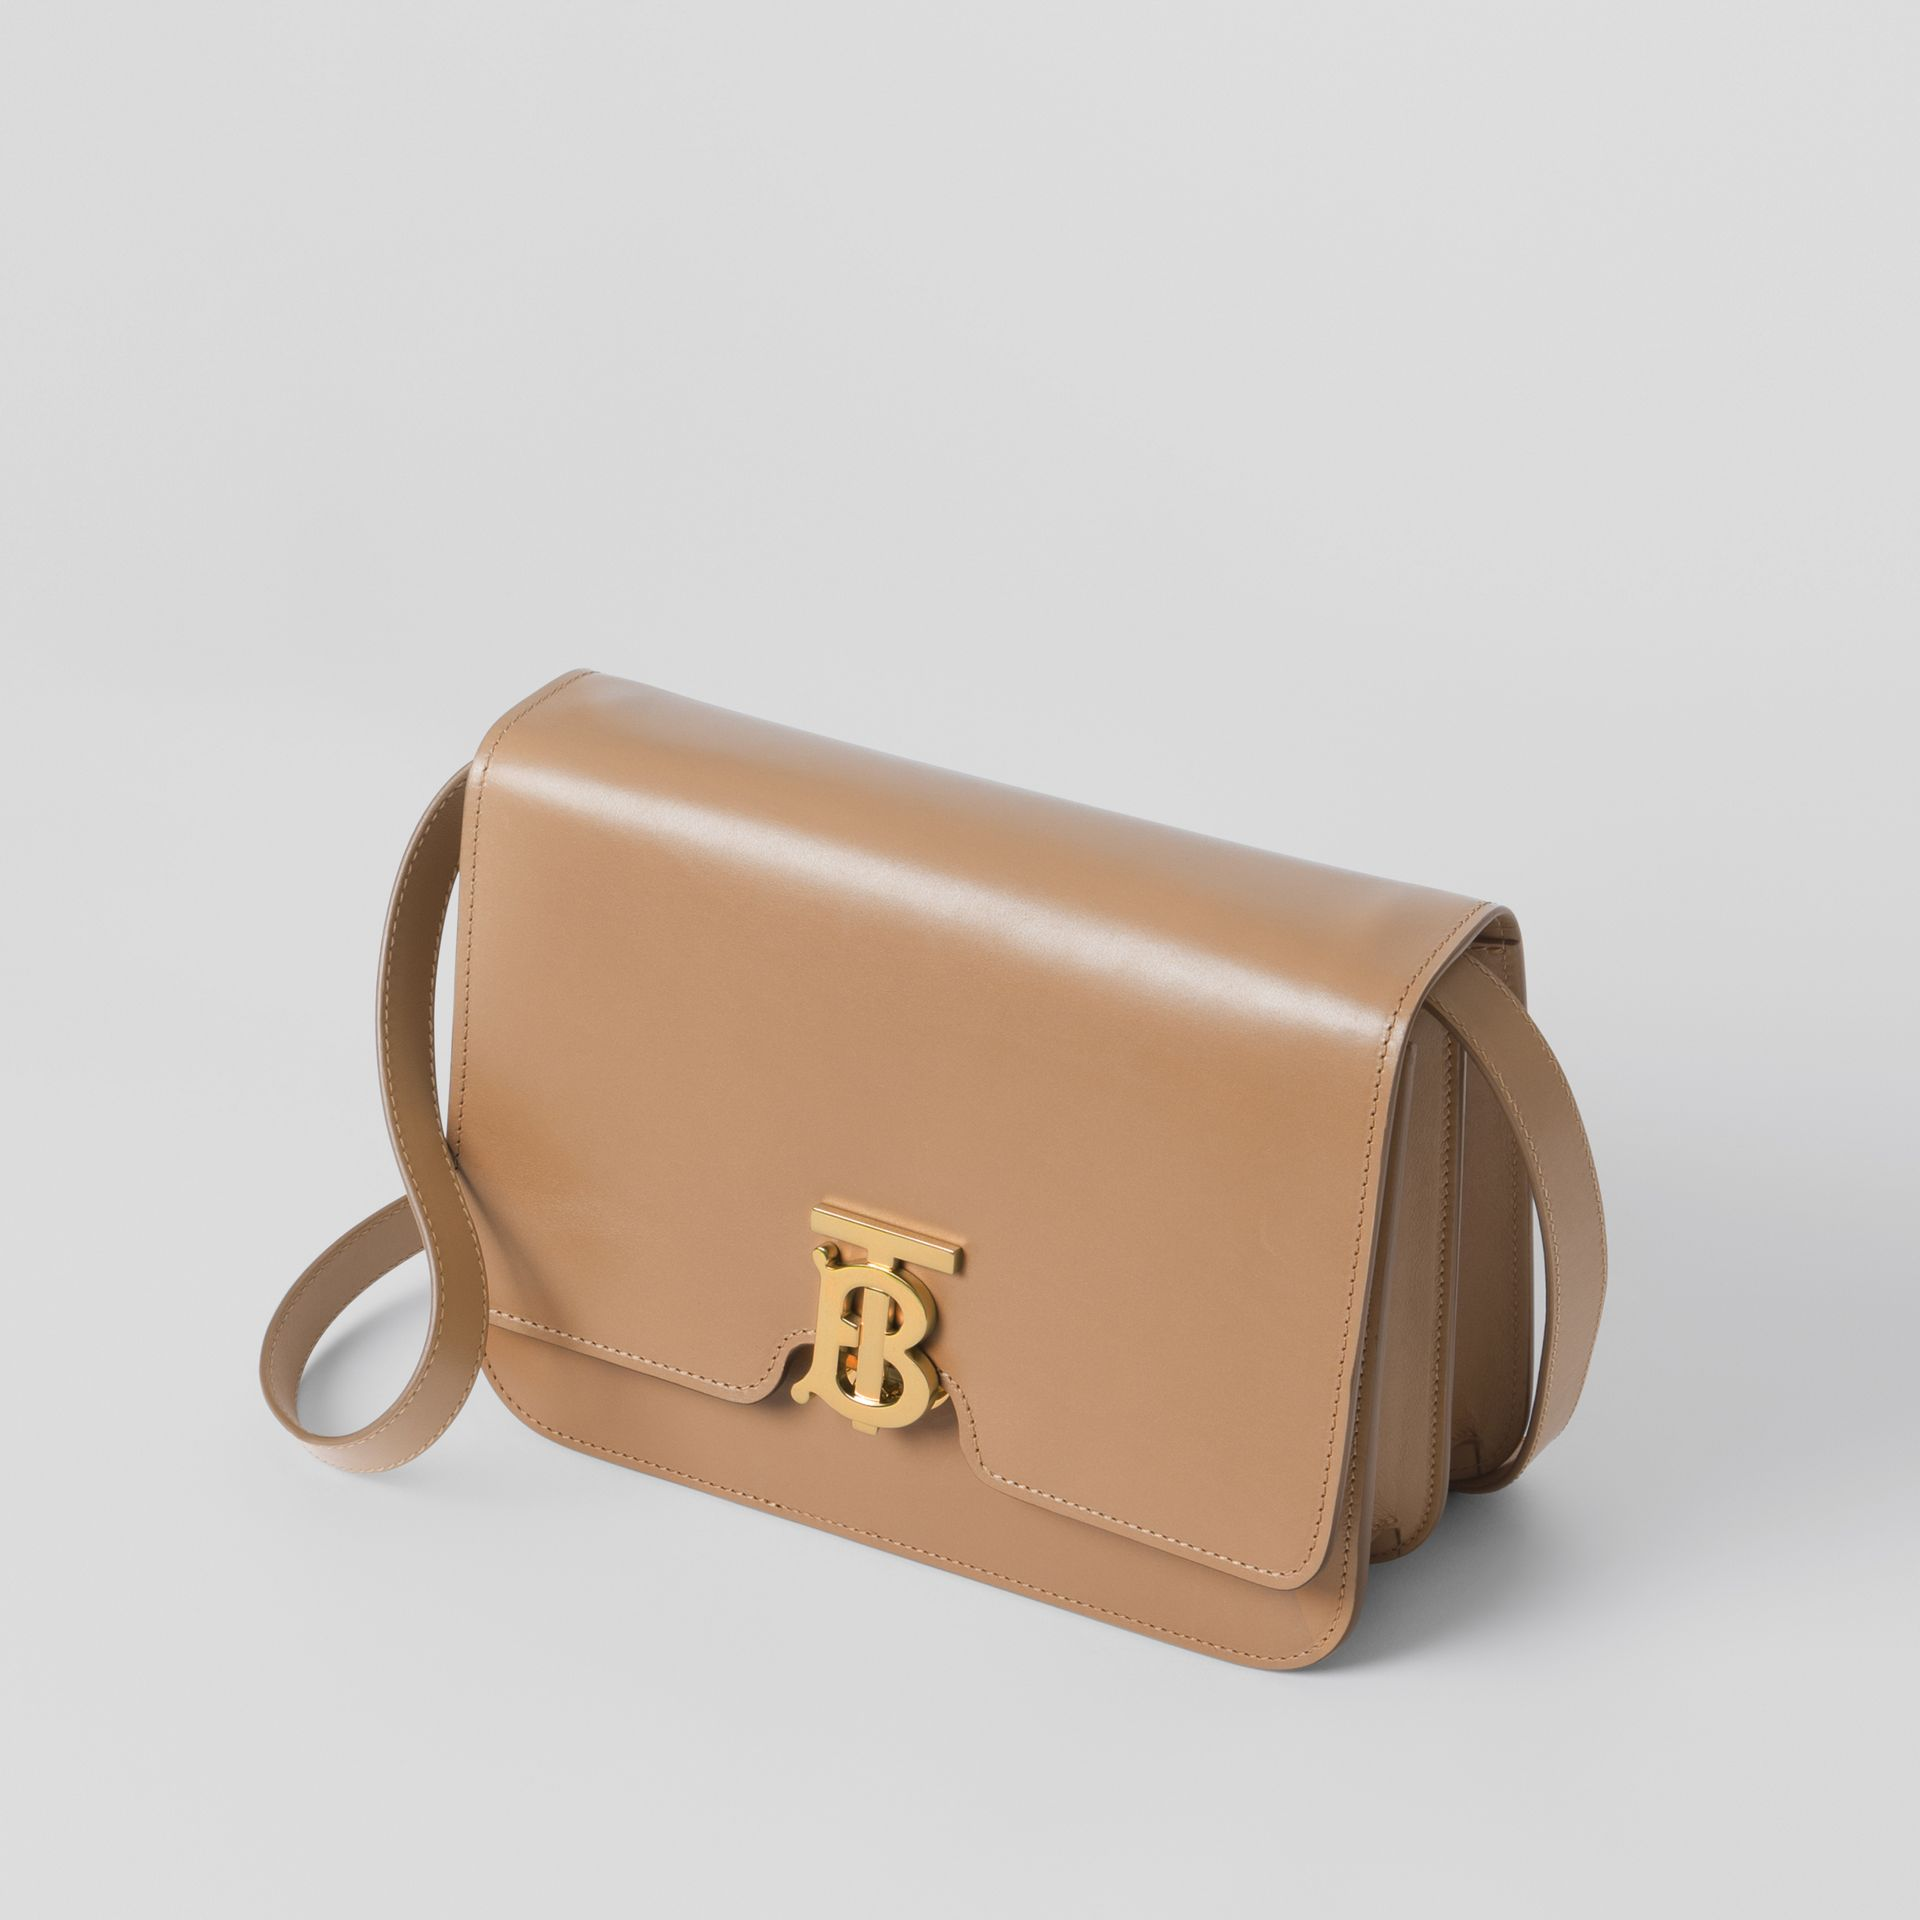 Medium Leather TB Bag in Light Camel - Women | Burberry - gallery image 1